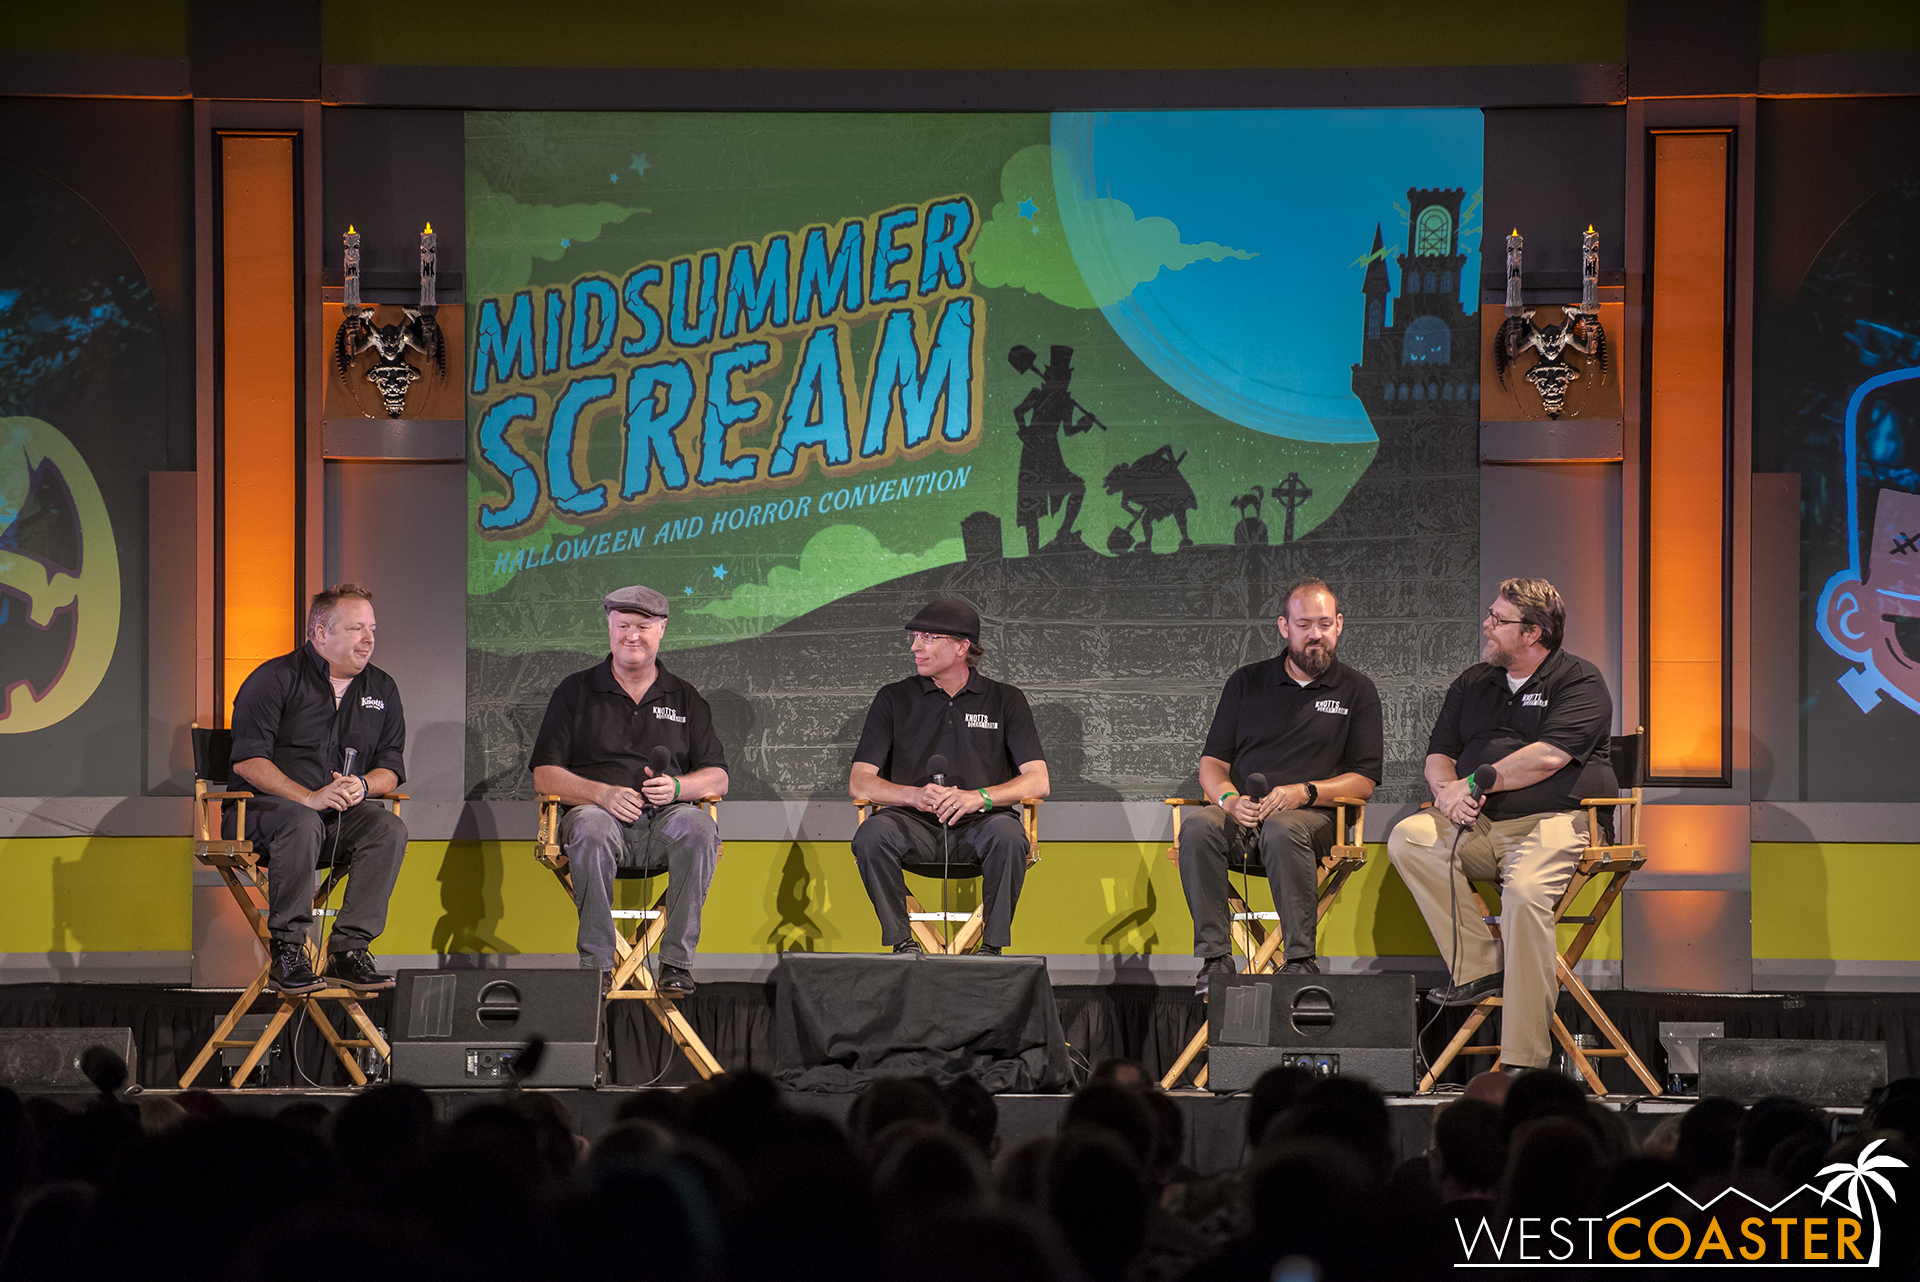 The Knott's Scary Farm panel spoke about bringing new levels of immersive activity and unadvertised show moments to last year's Scary Farm and introduced a bit of what to expect for this year.